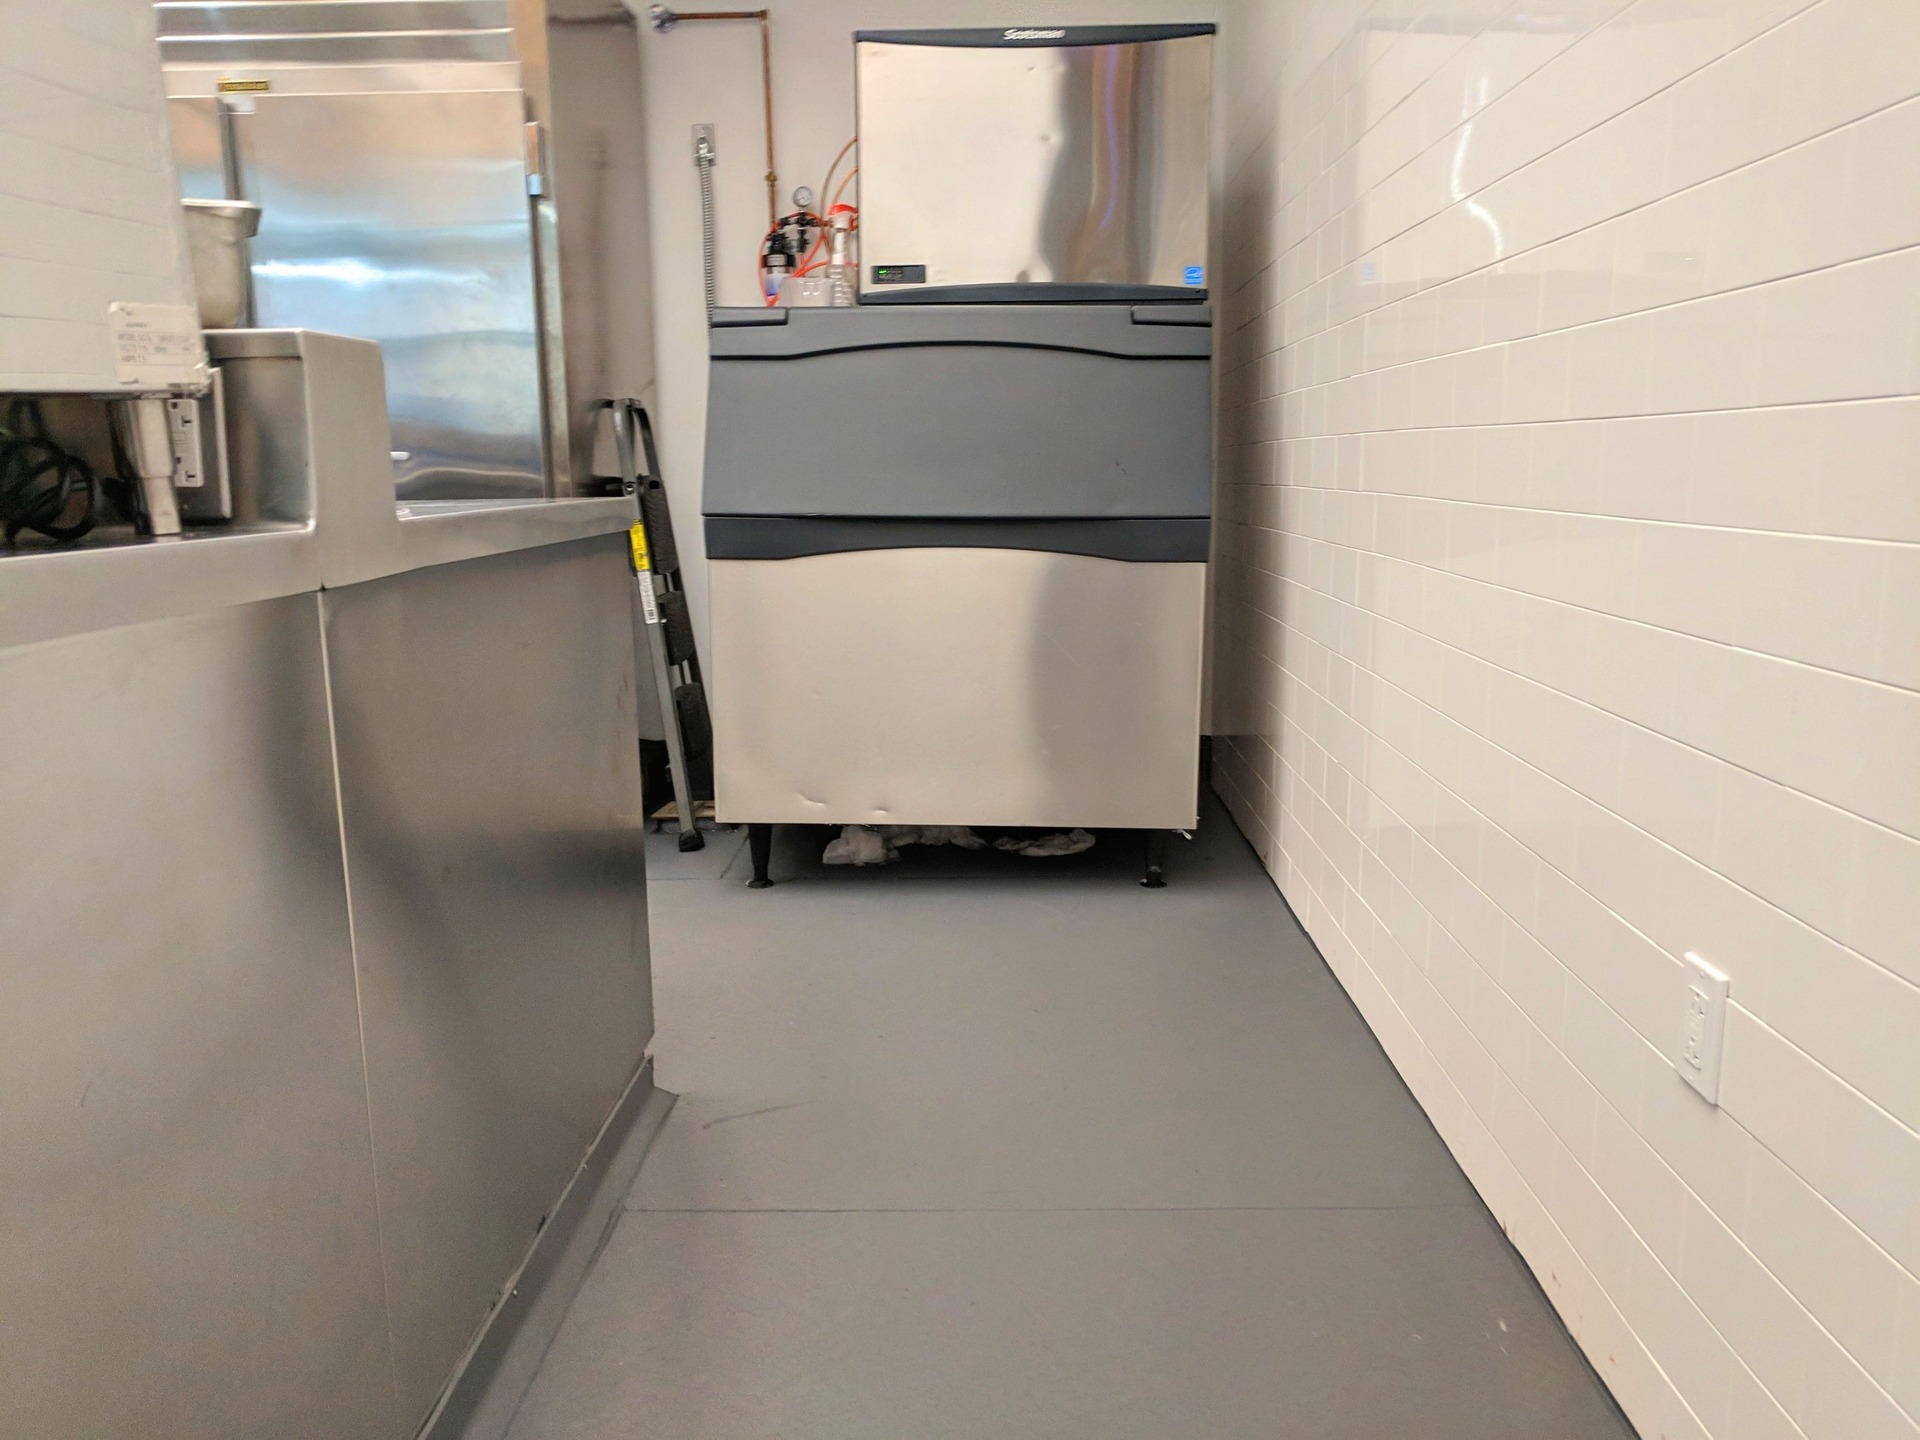 Eco-Grip combines cohesive fibers with an anti-fungal micro-biocide to create a product that is virtually indestructible, impact and puncture-resistant, heat and fire-resistant, and slip-resistant even when wet. This easy to clean, durable, and comfortable flooring is made from recycled materials. It can be installed over existing flooring and is cost-effective when compared with other flooring products. Commercial flooring never had it so good!